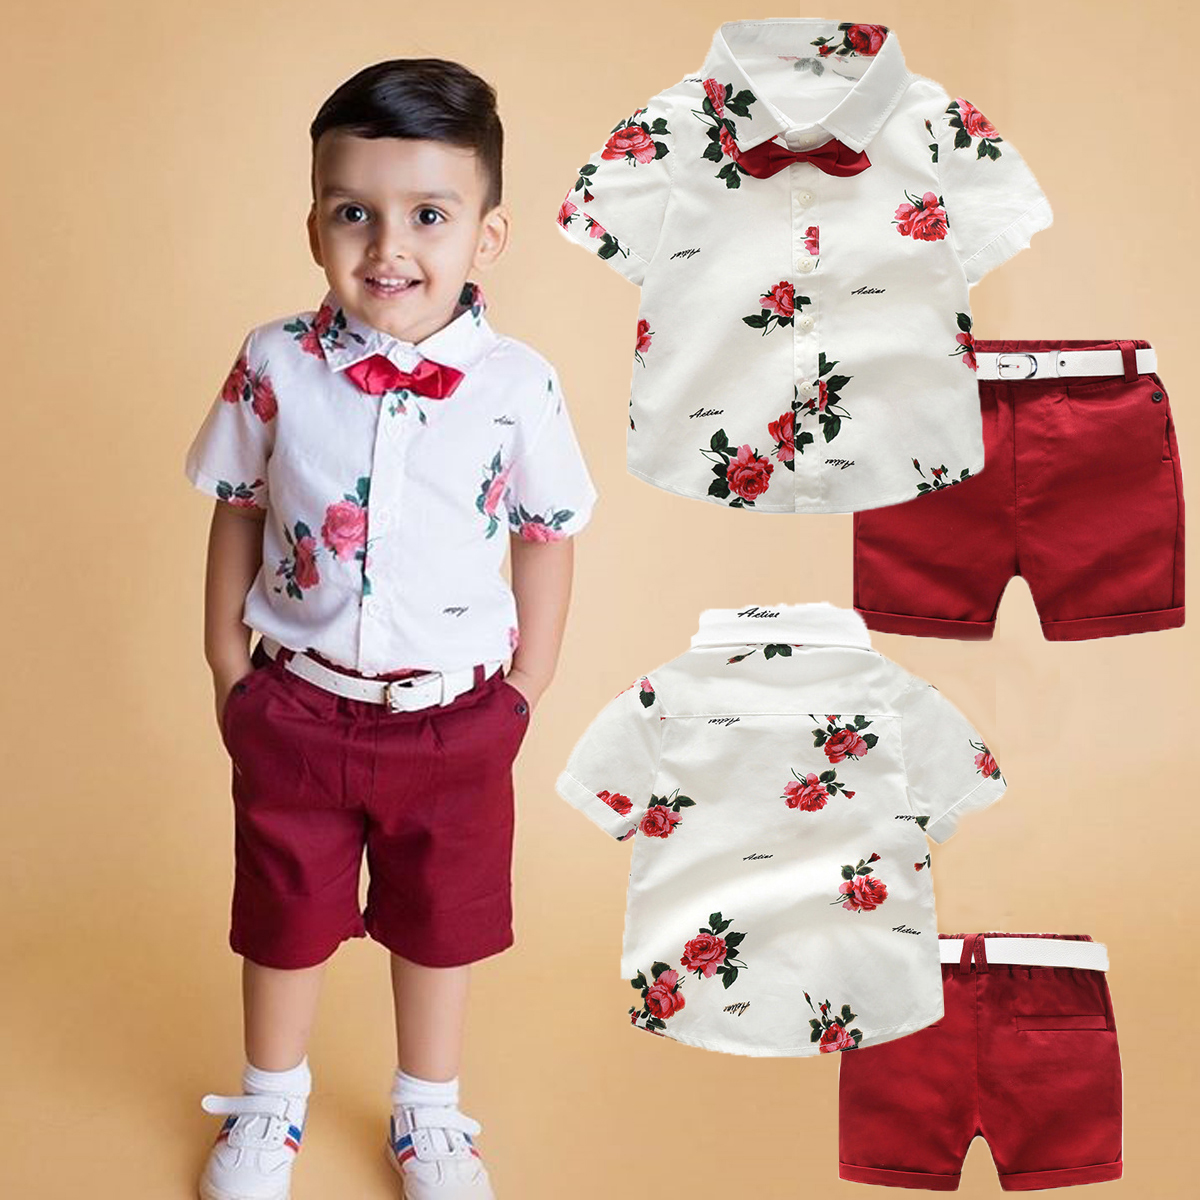 84f540720 Details about 3Pcs Baby Clothes Kids Boys Wedding Party Suit Top+Pants Belt Tuxedo  Outfits Set